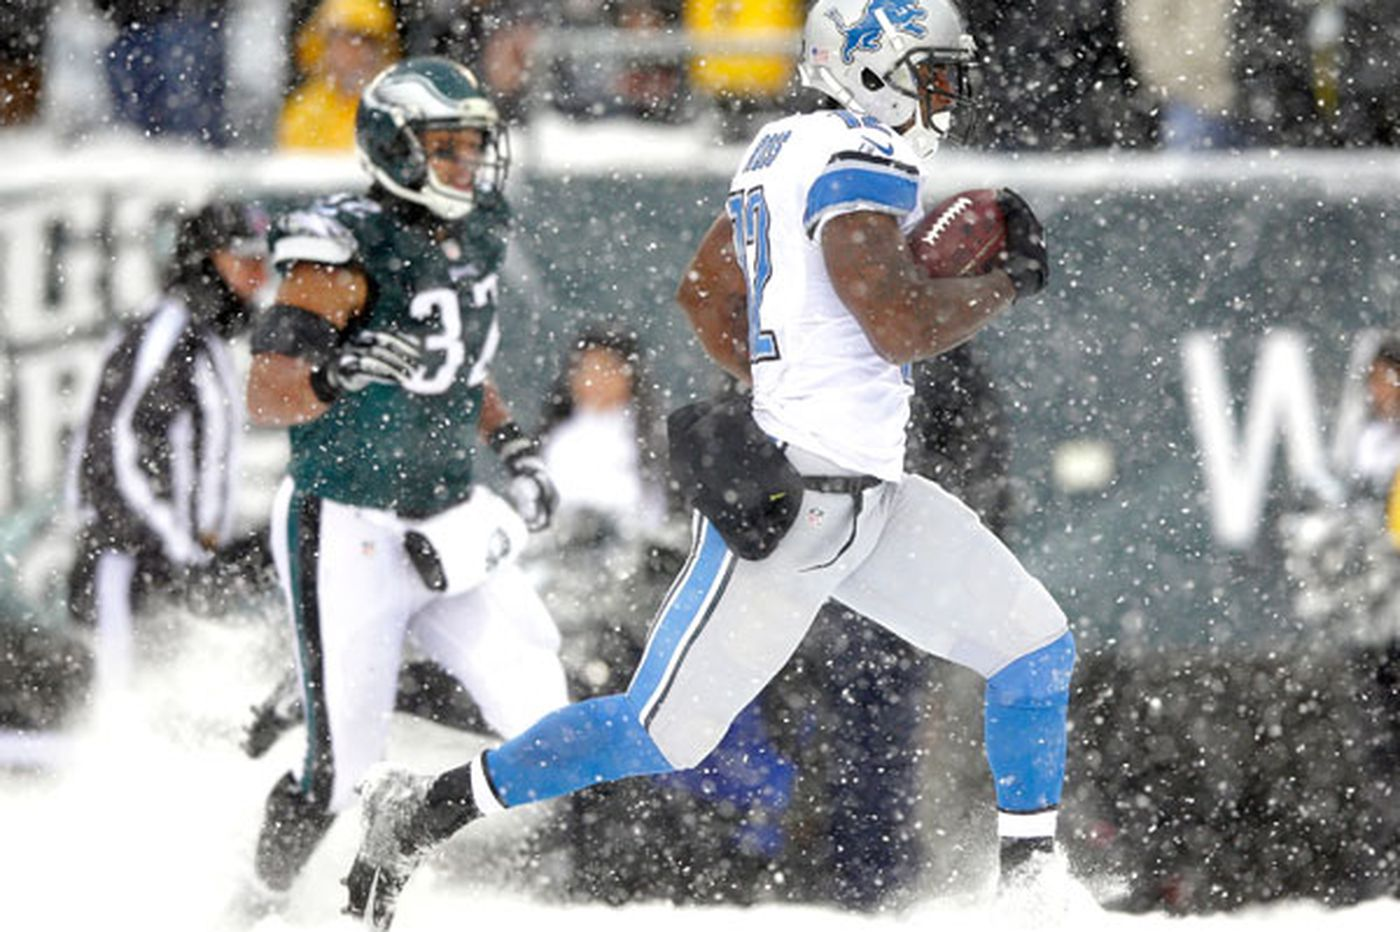 No snow job from Eagles special-teamers